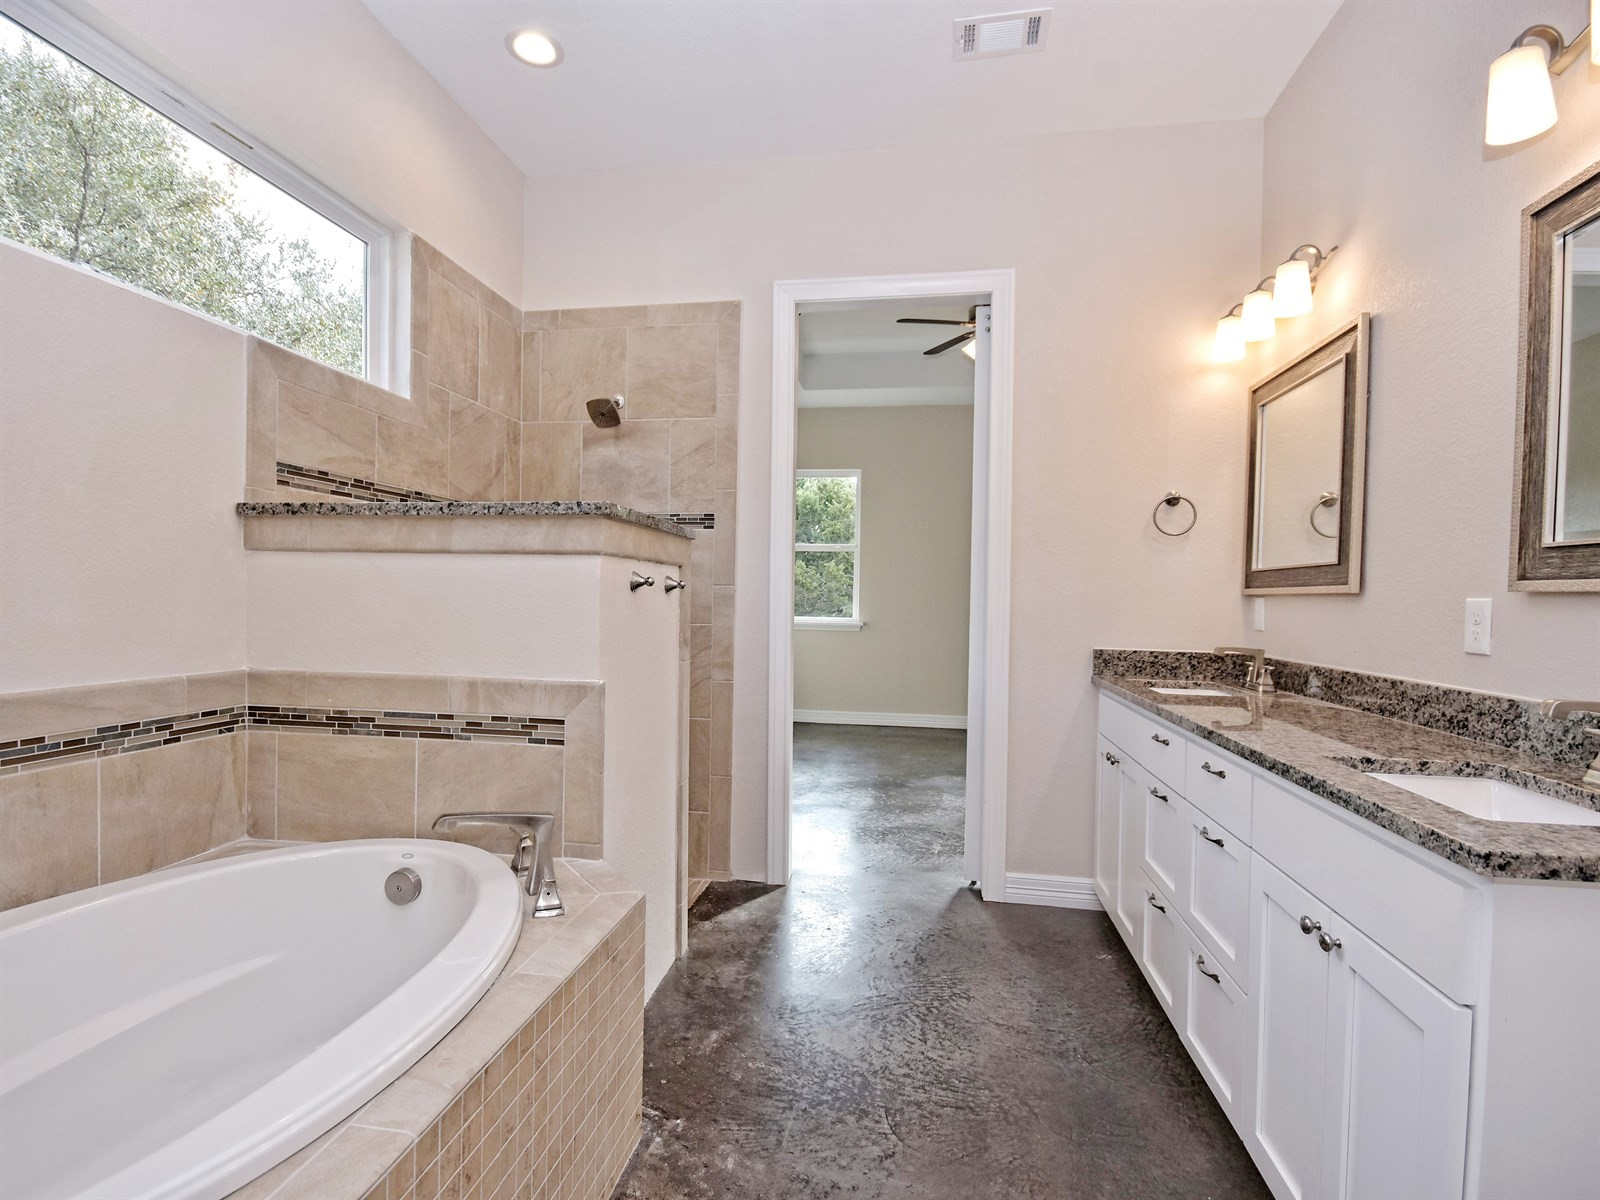 016_Master Bathroom2.jpg